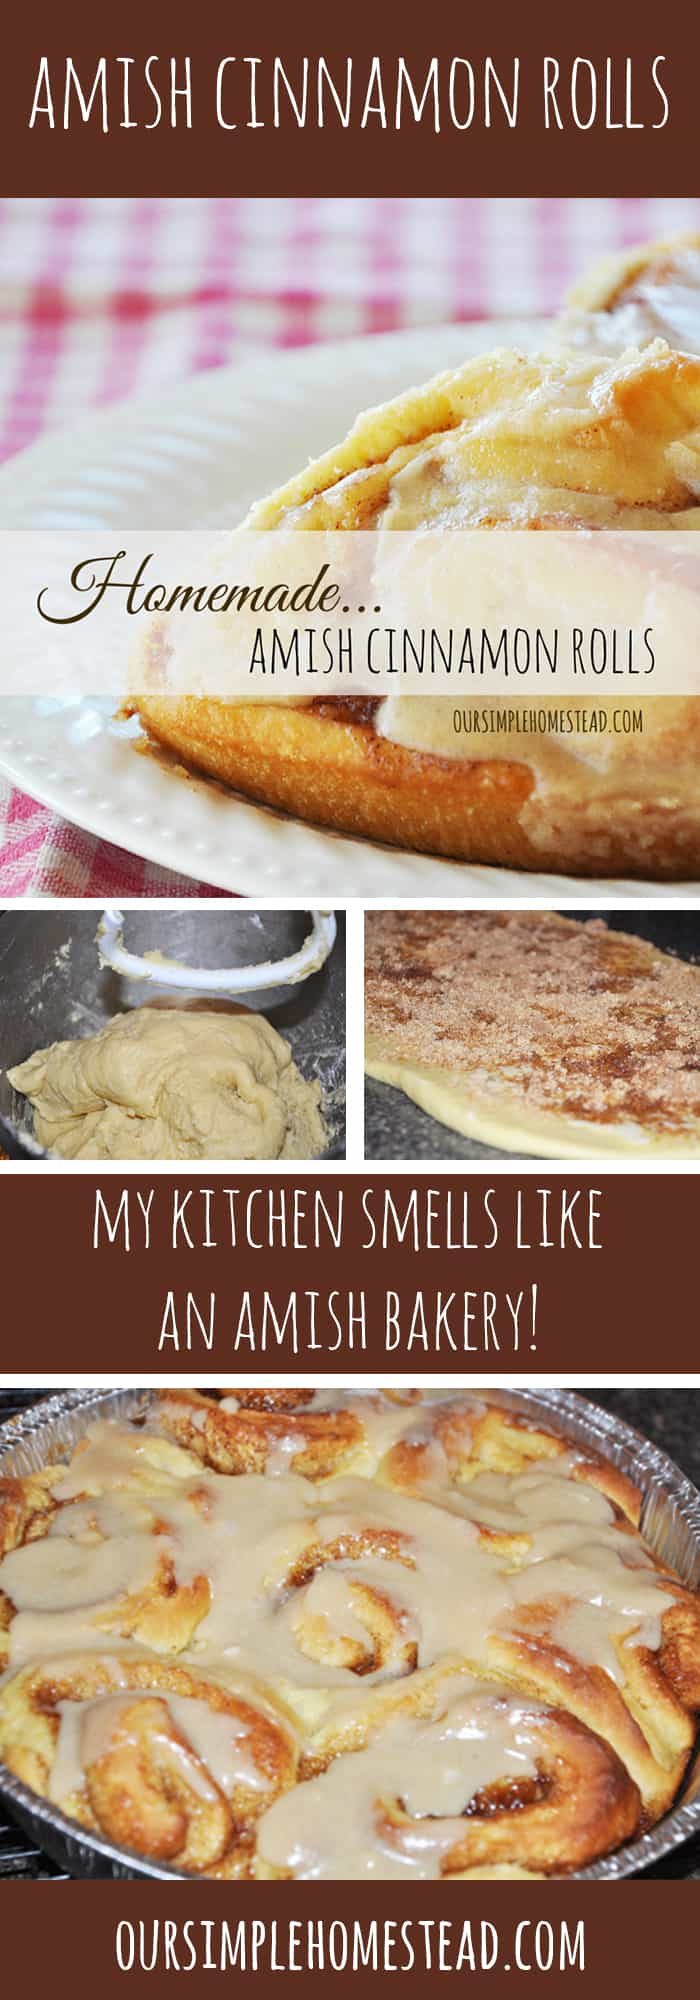 Amish Cinnamon Rolls Recipe